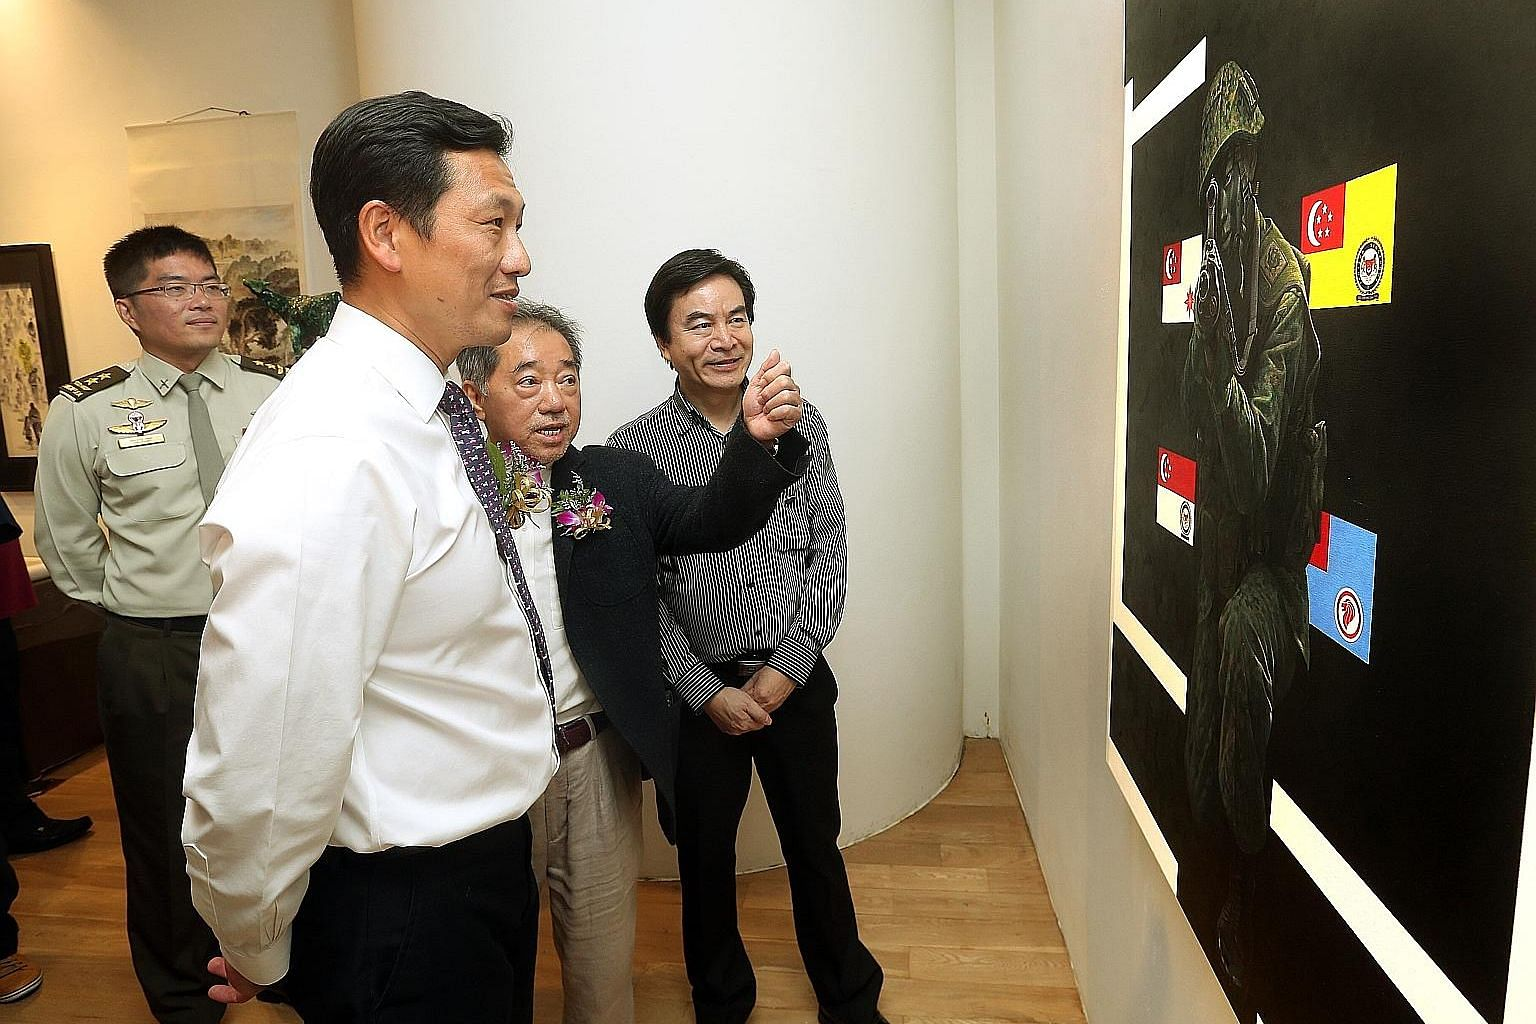 Above: (From left) Chief of Army Melvyn Ong, Second Minister for Defence Ong Ye Kung, Singapore Art Society president Terence Teo and artist Tan Rui Rong at the launch of the public exhibition at Ion Art Gallery yesterday. Right: Artist Kevin Tan wit